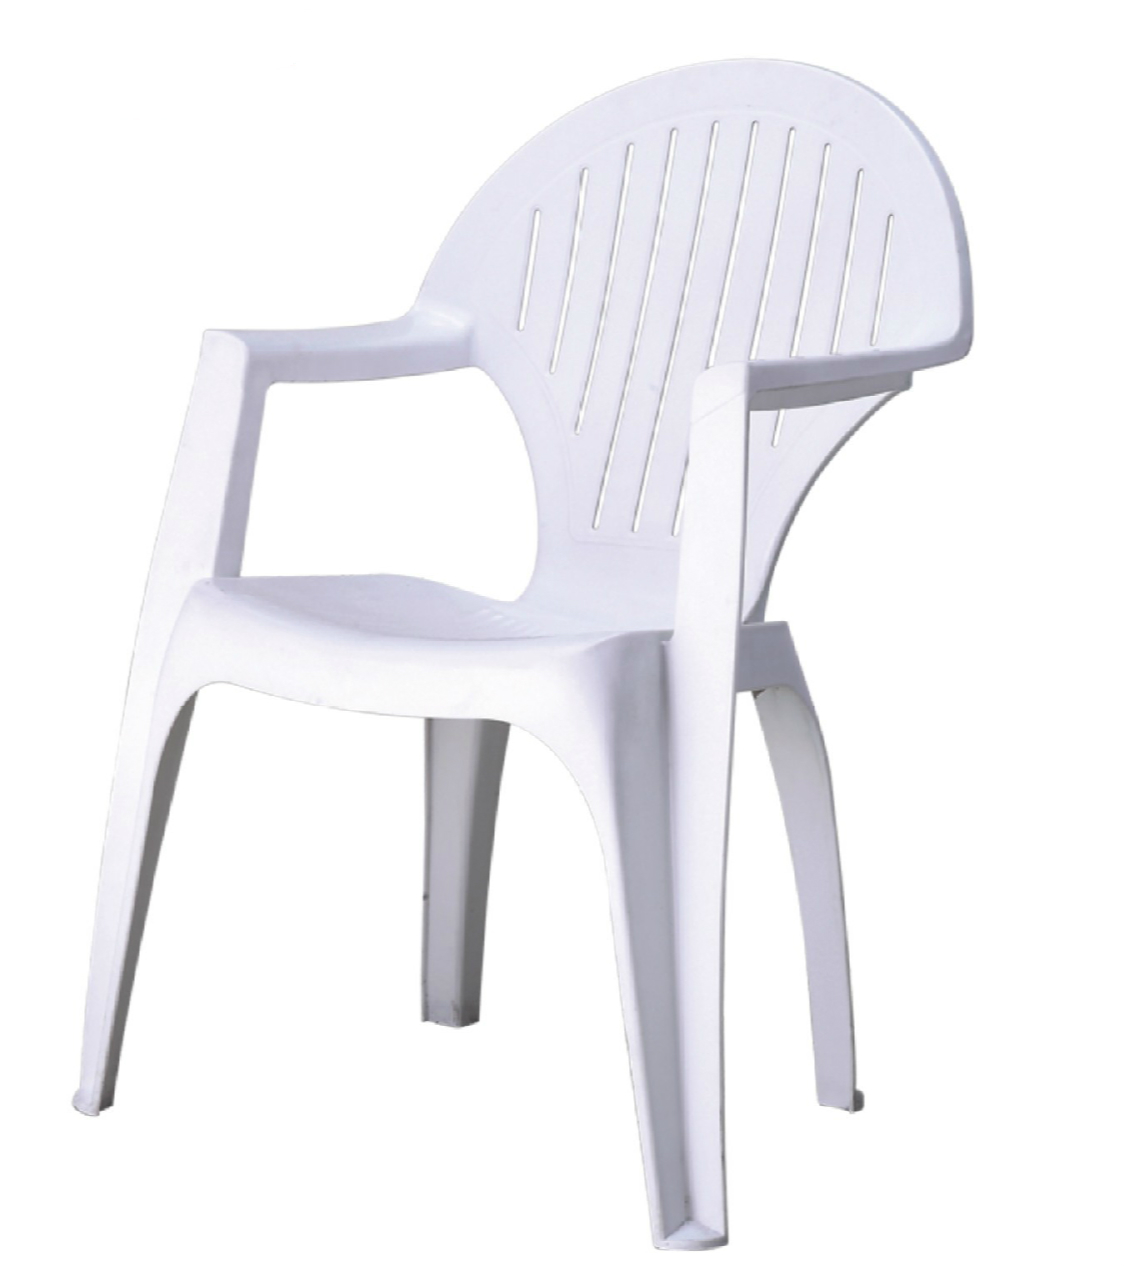 Chair Plastic Table Sandy Beach Leisure Time Chair Plastic Tables And Chairs Sidewalk Snack Booth Plastic Chair Yong Yao